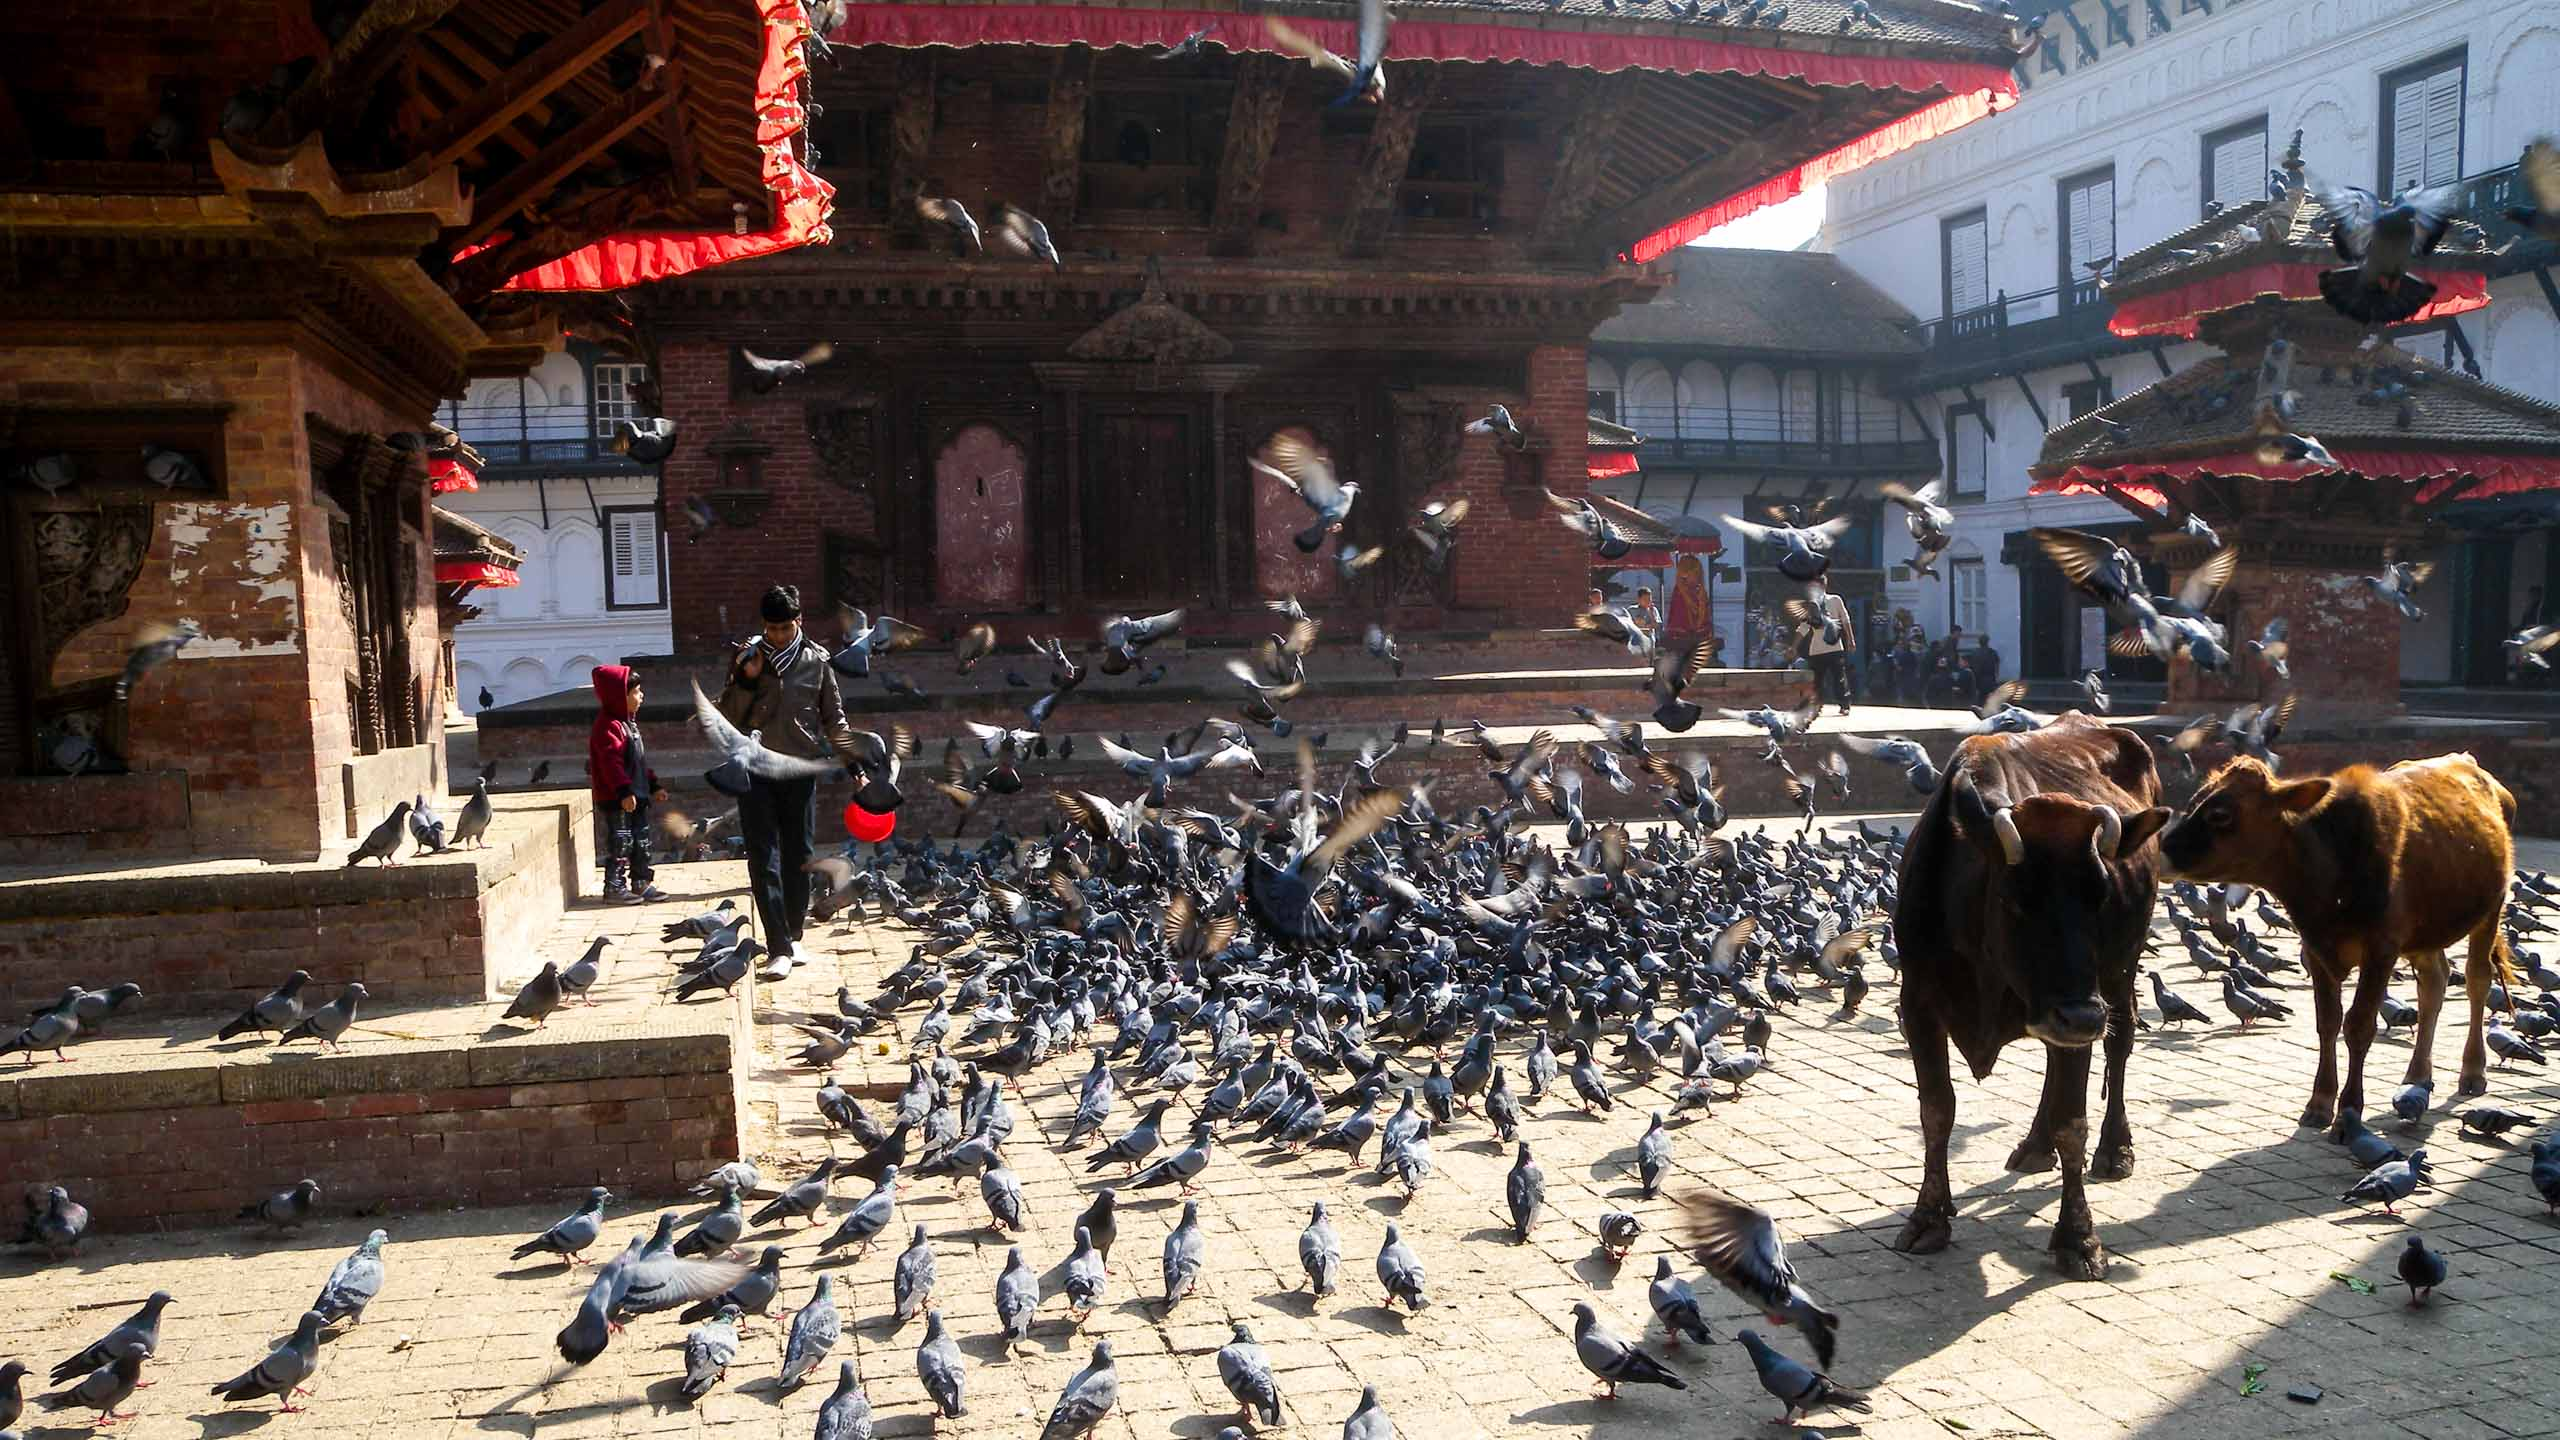 Two cows and flock of birds in Nepal town square